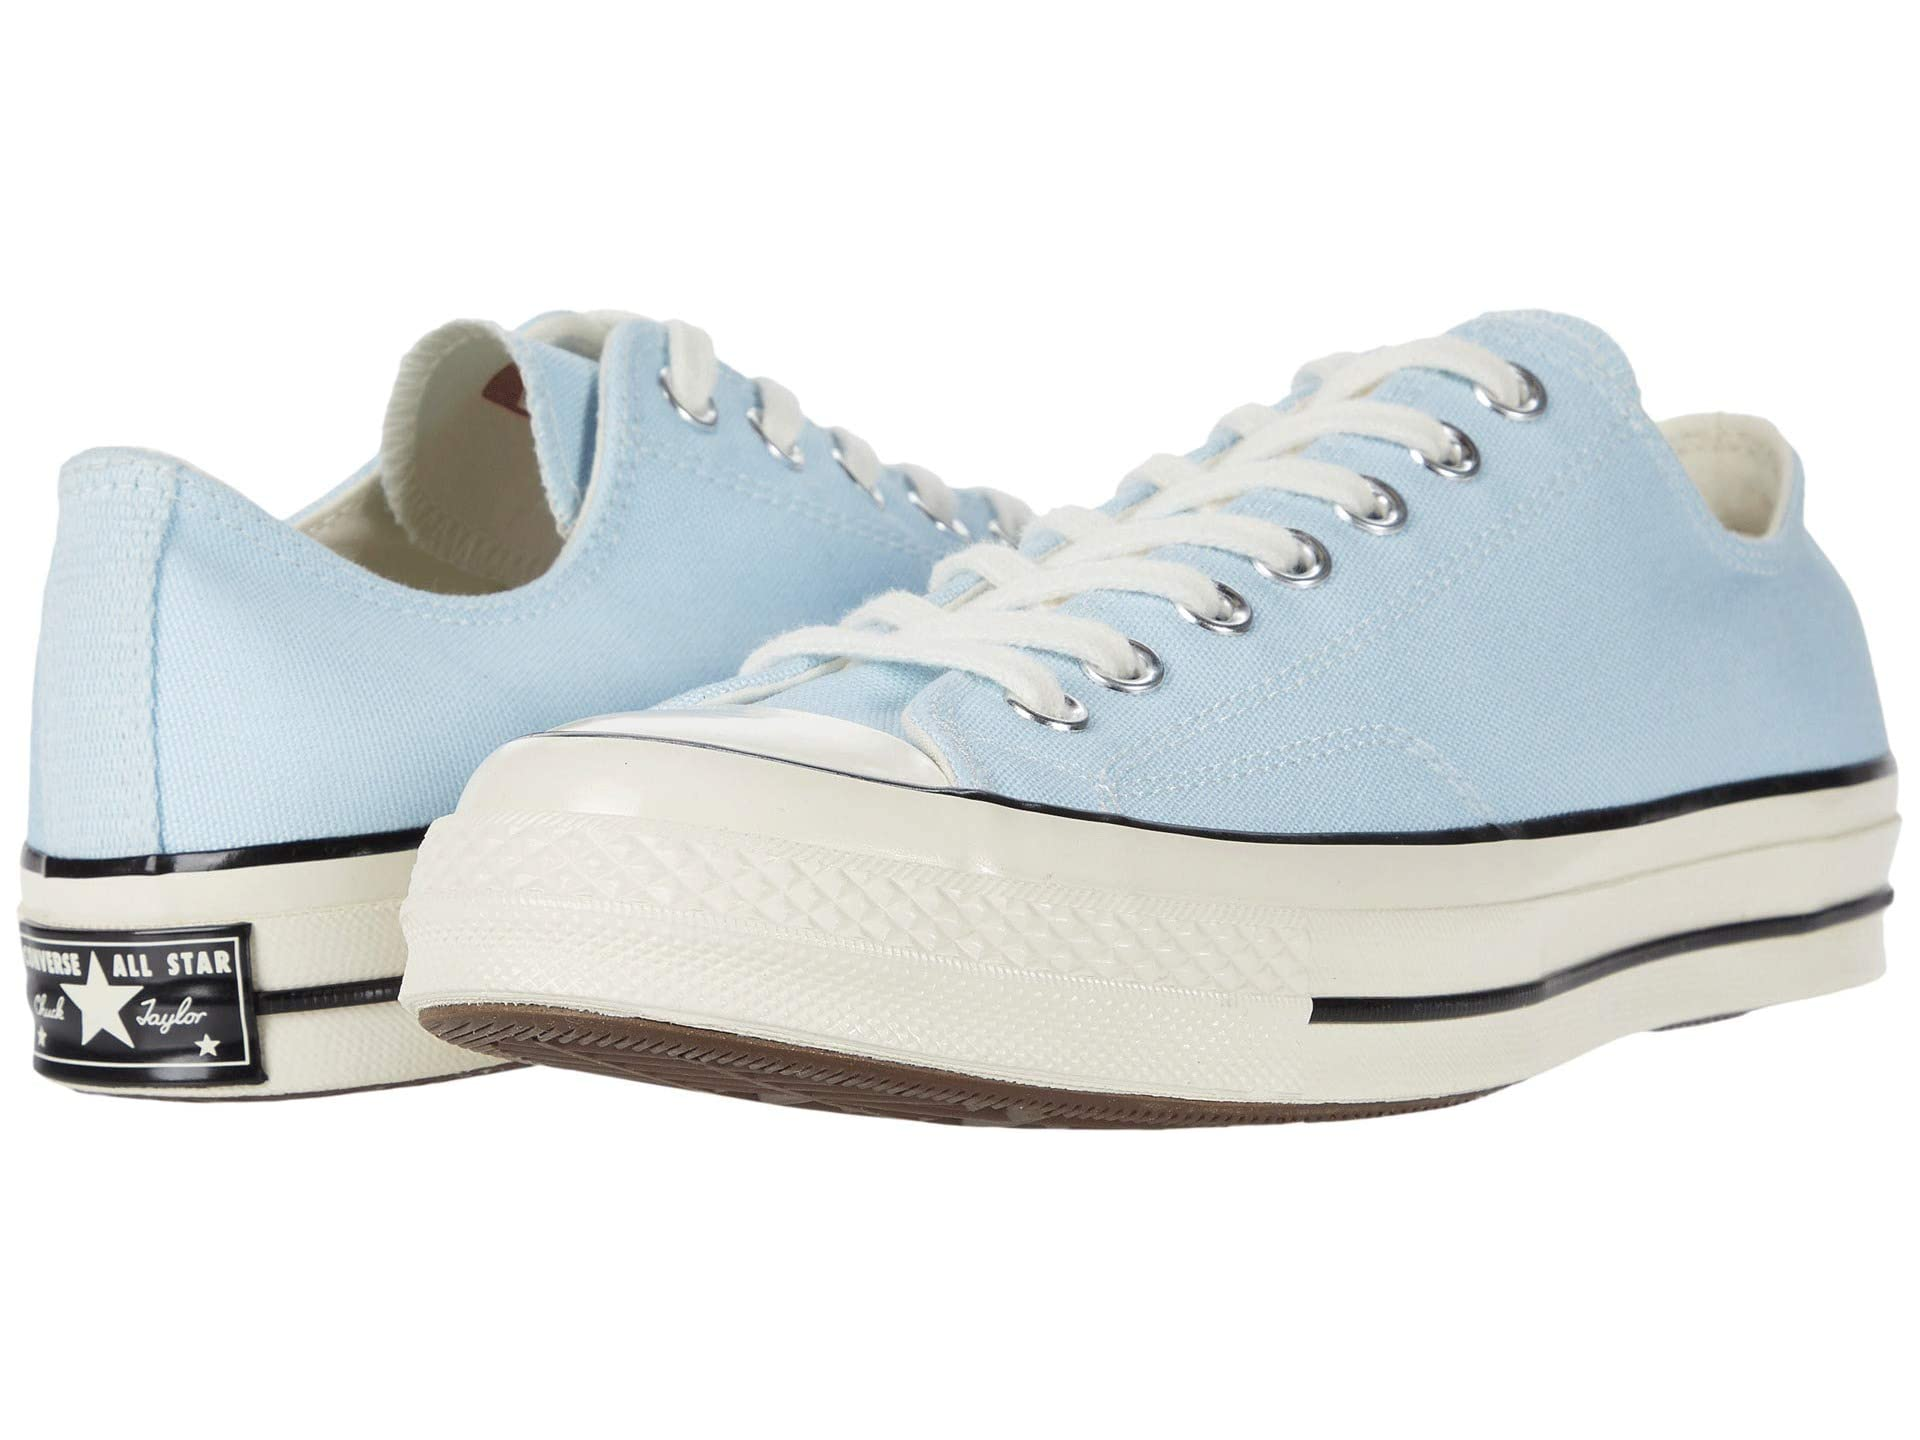 Chuck Taylor Sneakers by Converse, available on zappos.com for $60 Bella Hadid Shoes Exact Product